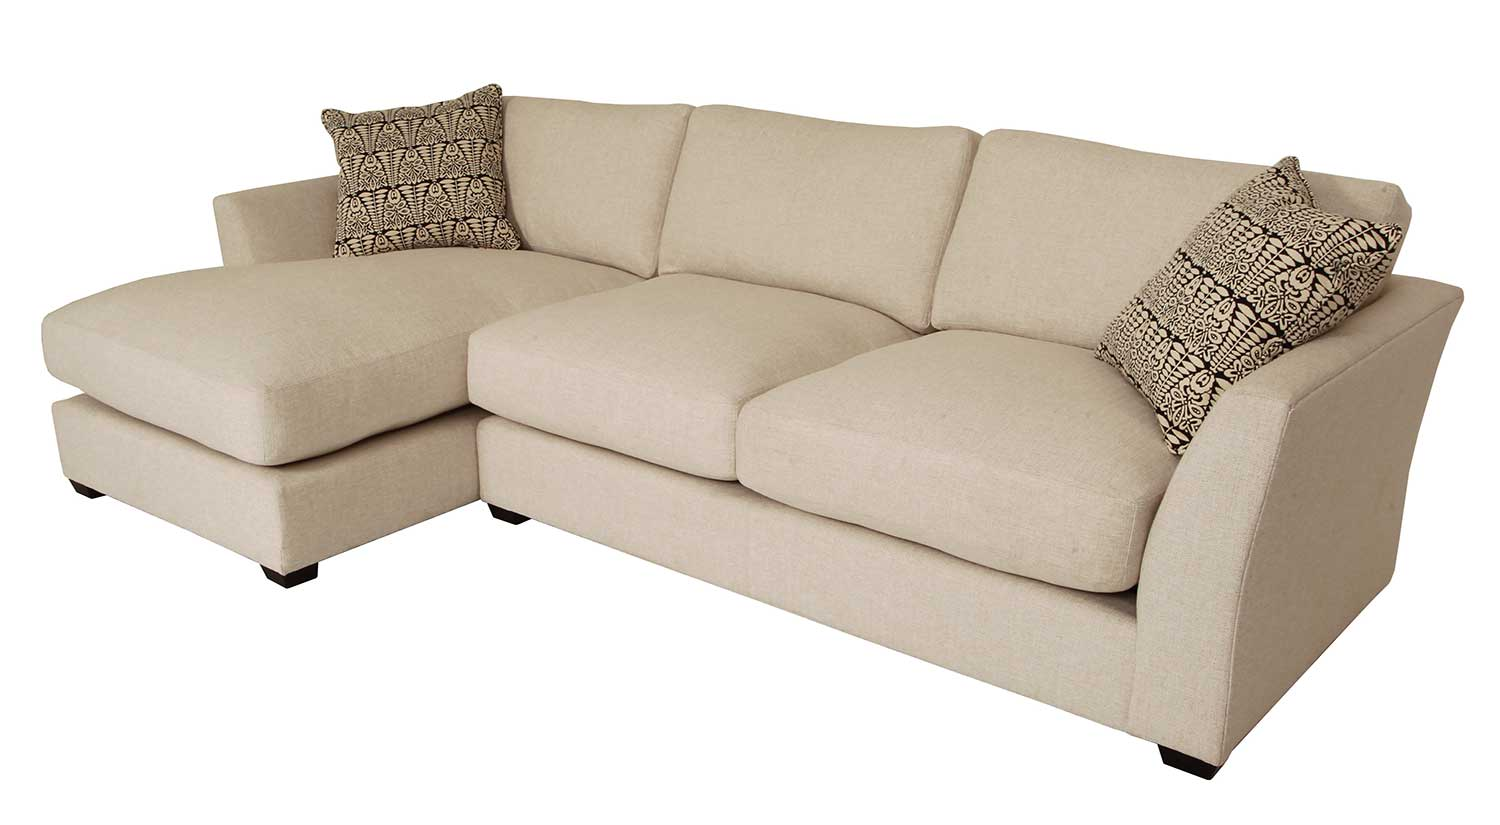 Circle Furniture Liam Sectional Chaise Sofas